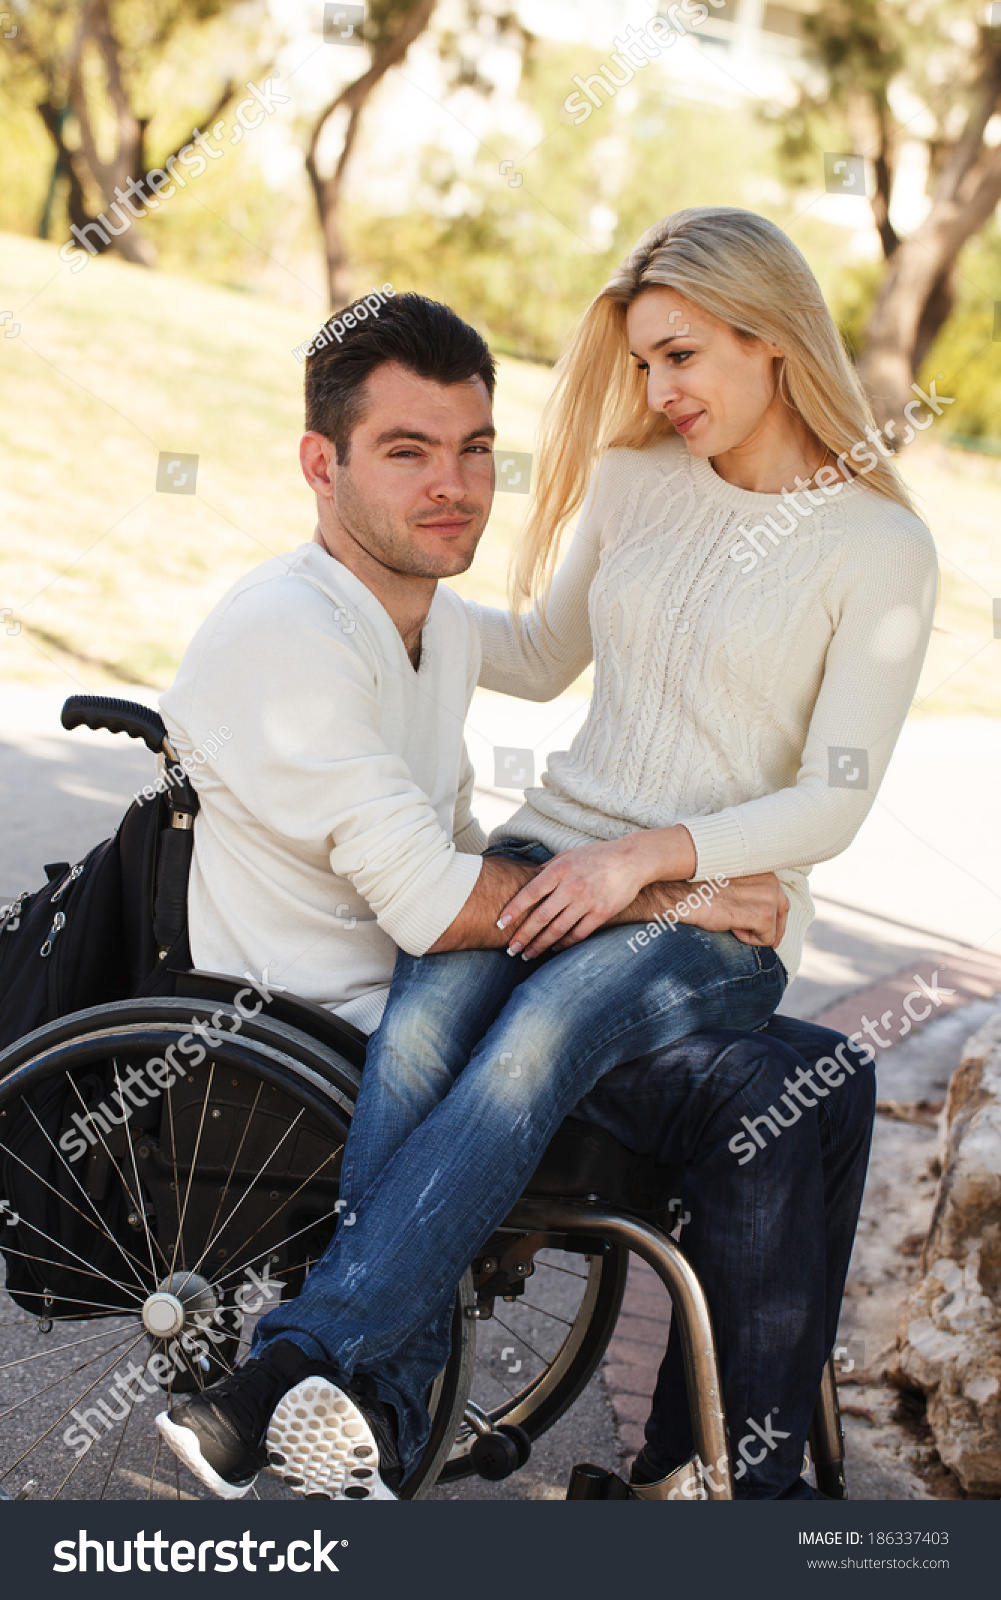 Whats it like dating someone in a wheelchair